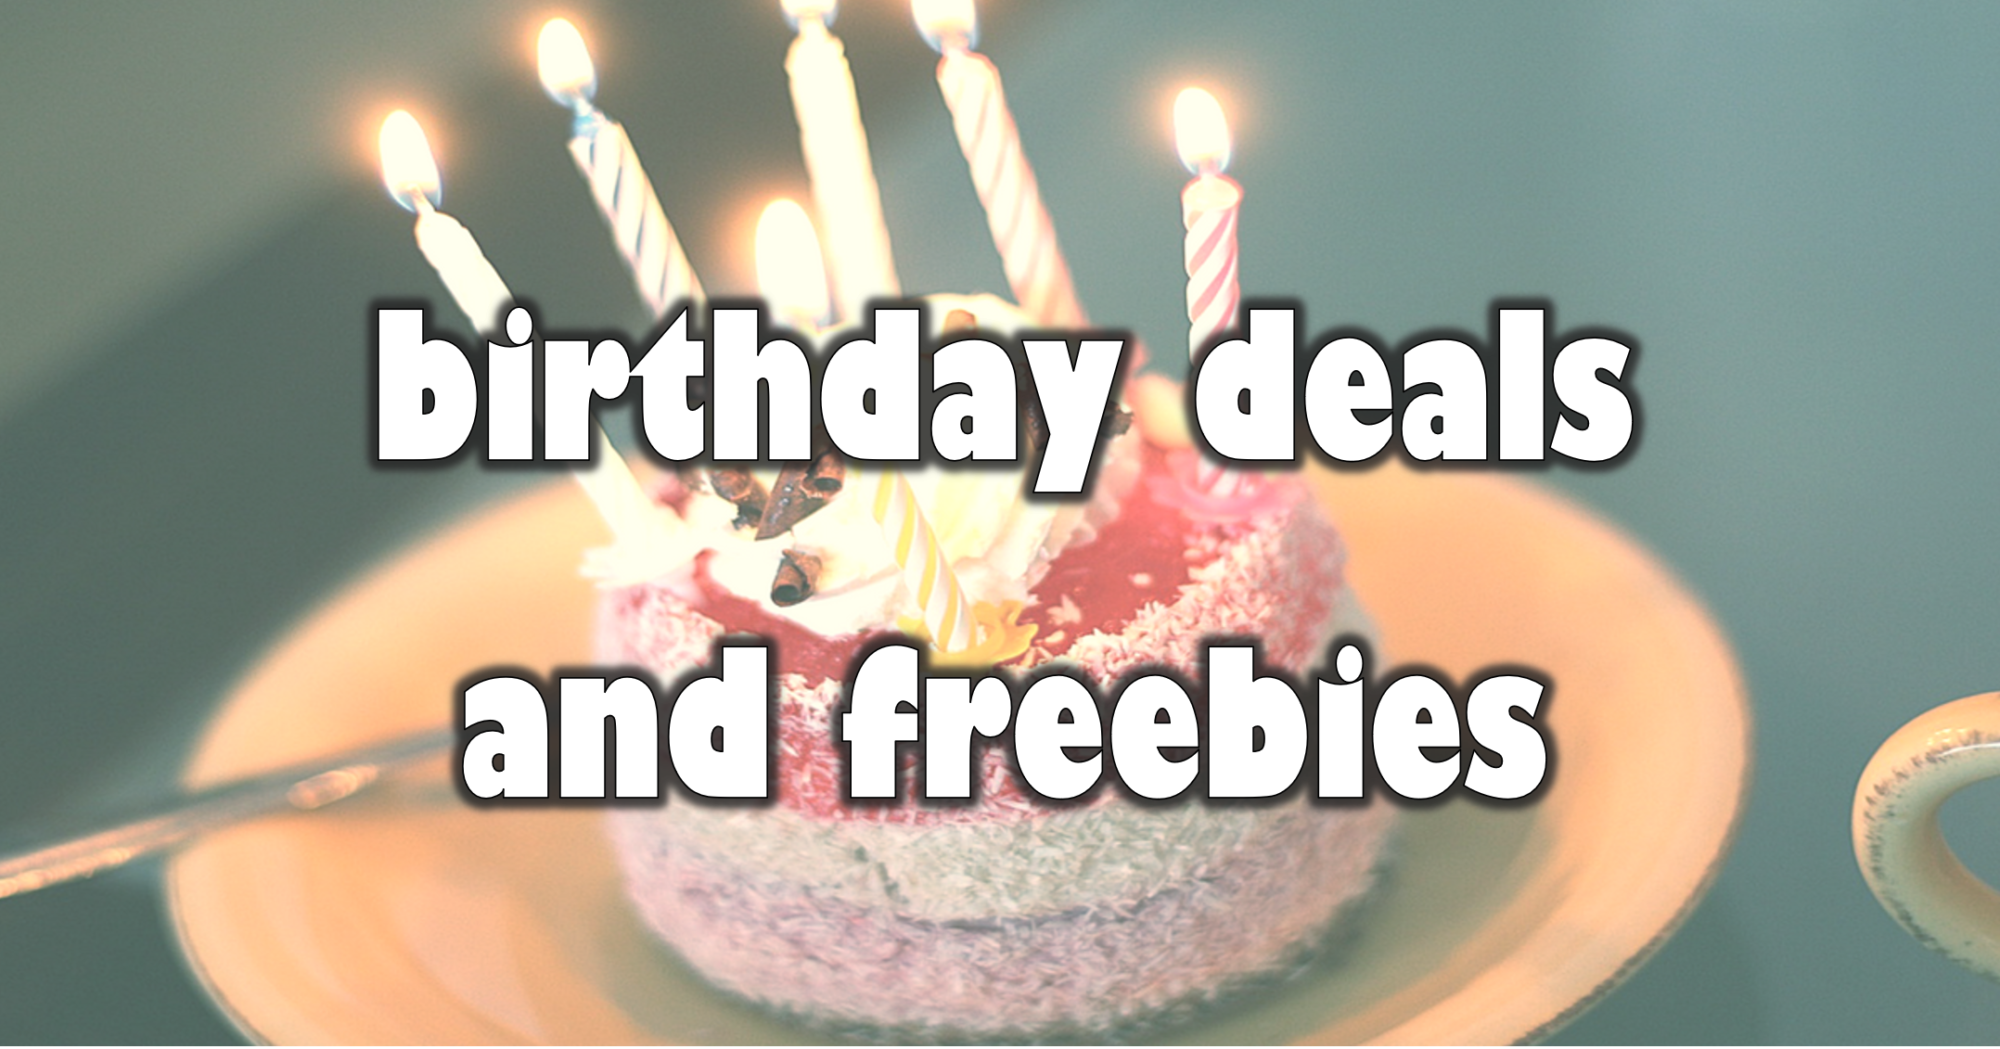 Birthday Freebies: Free Food or Beverage On Your Birthday